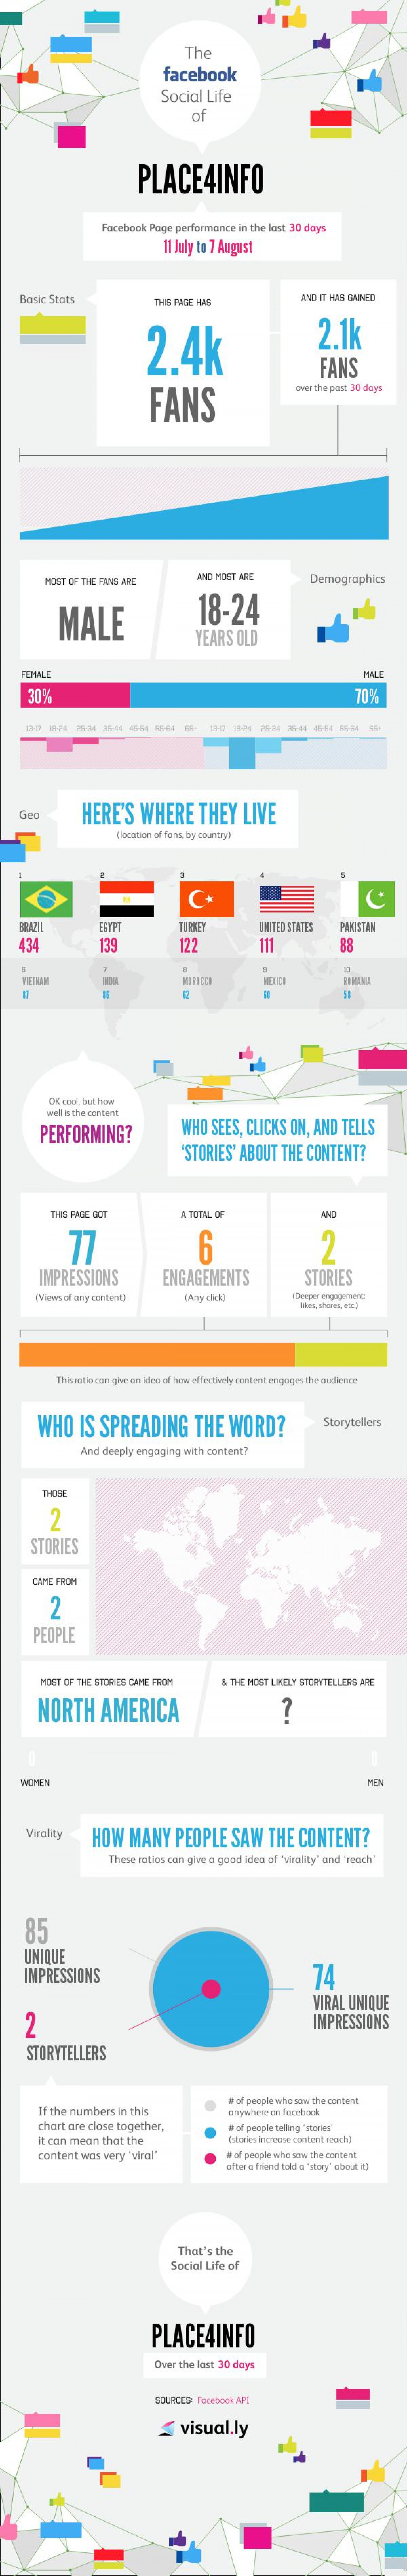 Facebook Insights for Place4info Infographic